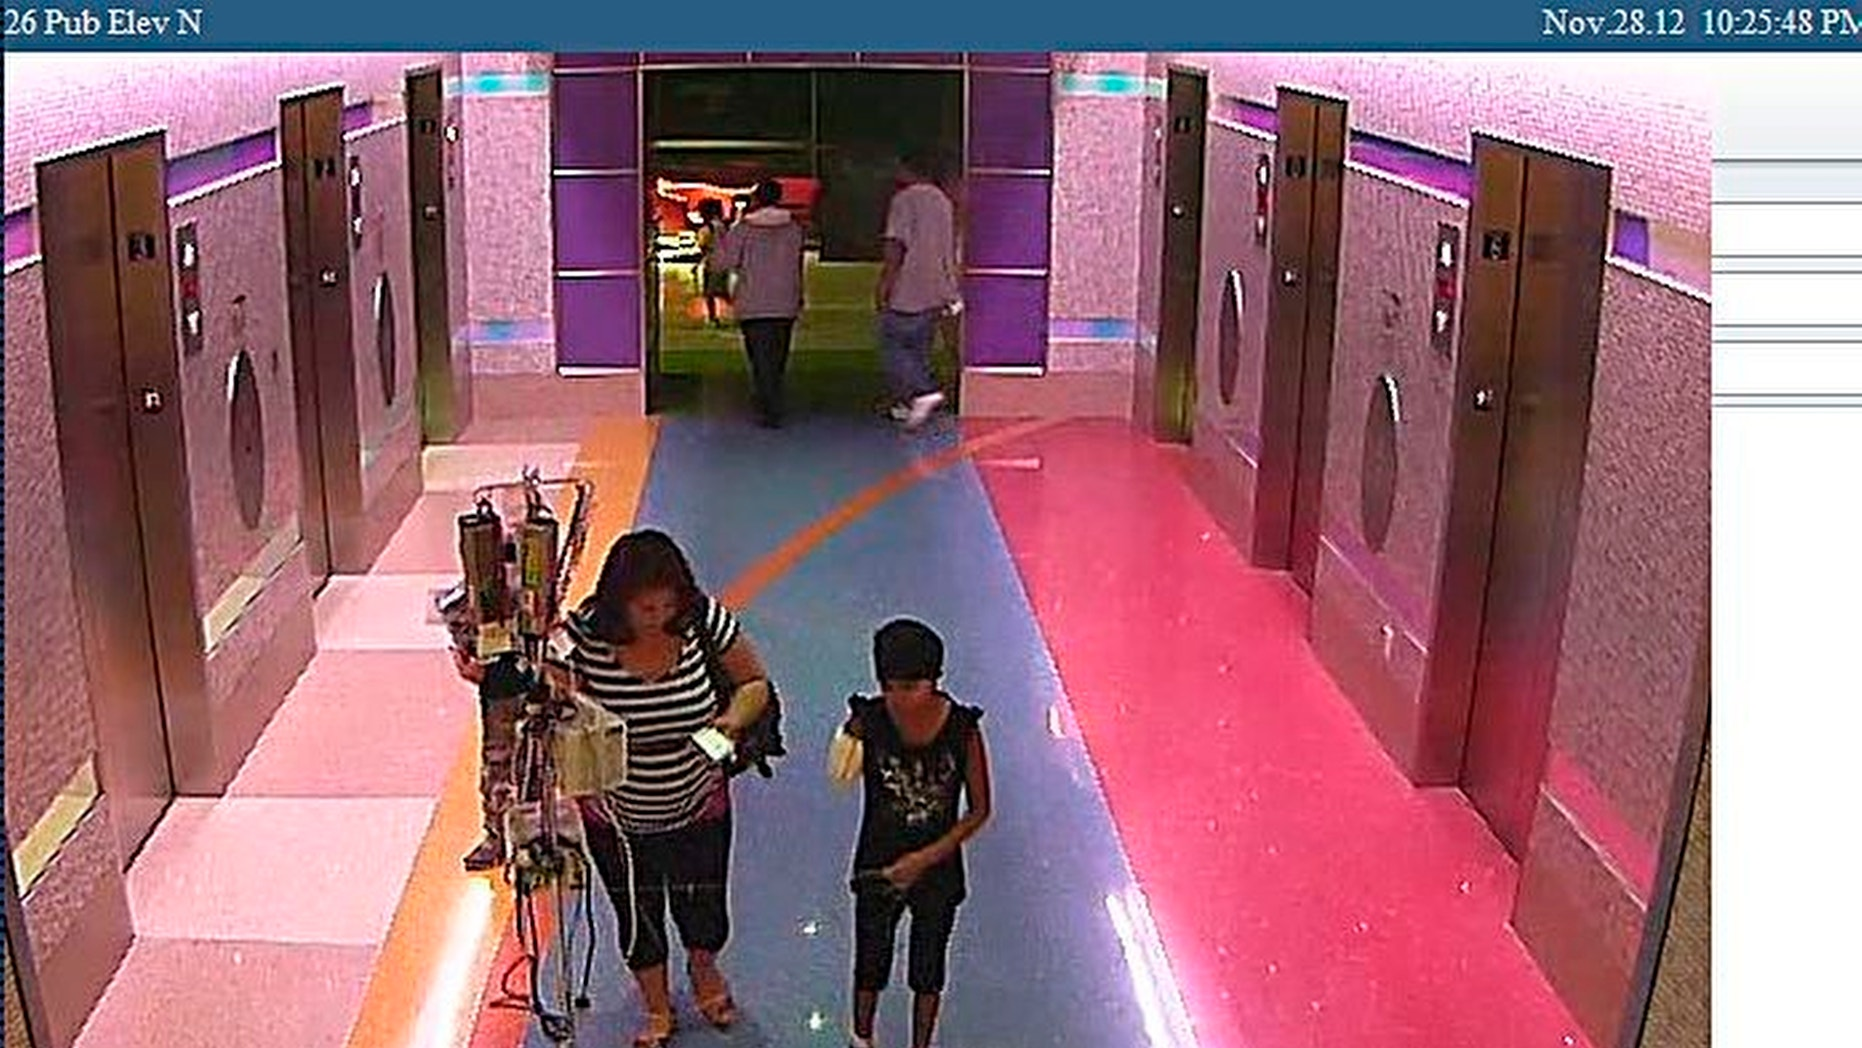 Dec. 3, 2012: In this hospital surveillance photo released by the Phoenix Police Department, a woman is seen with her 11-year-old daughter, a leukemia patient who had her arm amputated and a heart catheter inserted due to an infection.